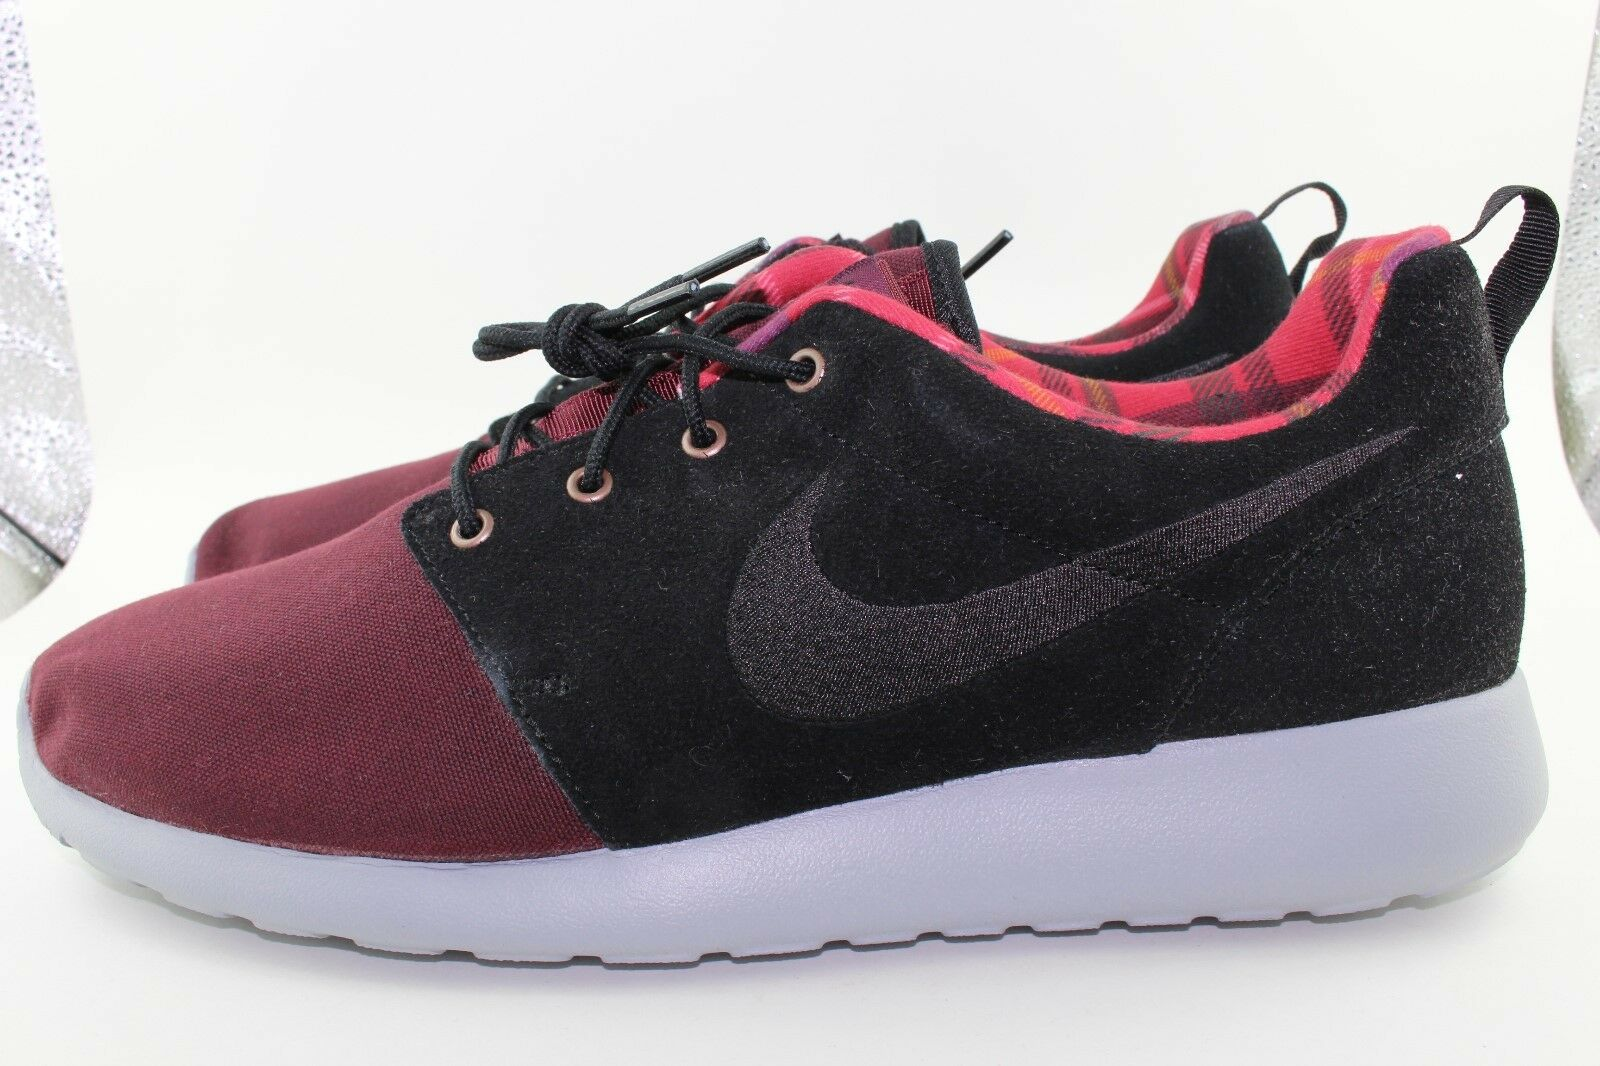 Nike Roshe One Premium Comfortable Brand discount Wild casual shoes